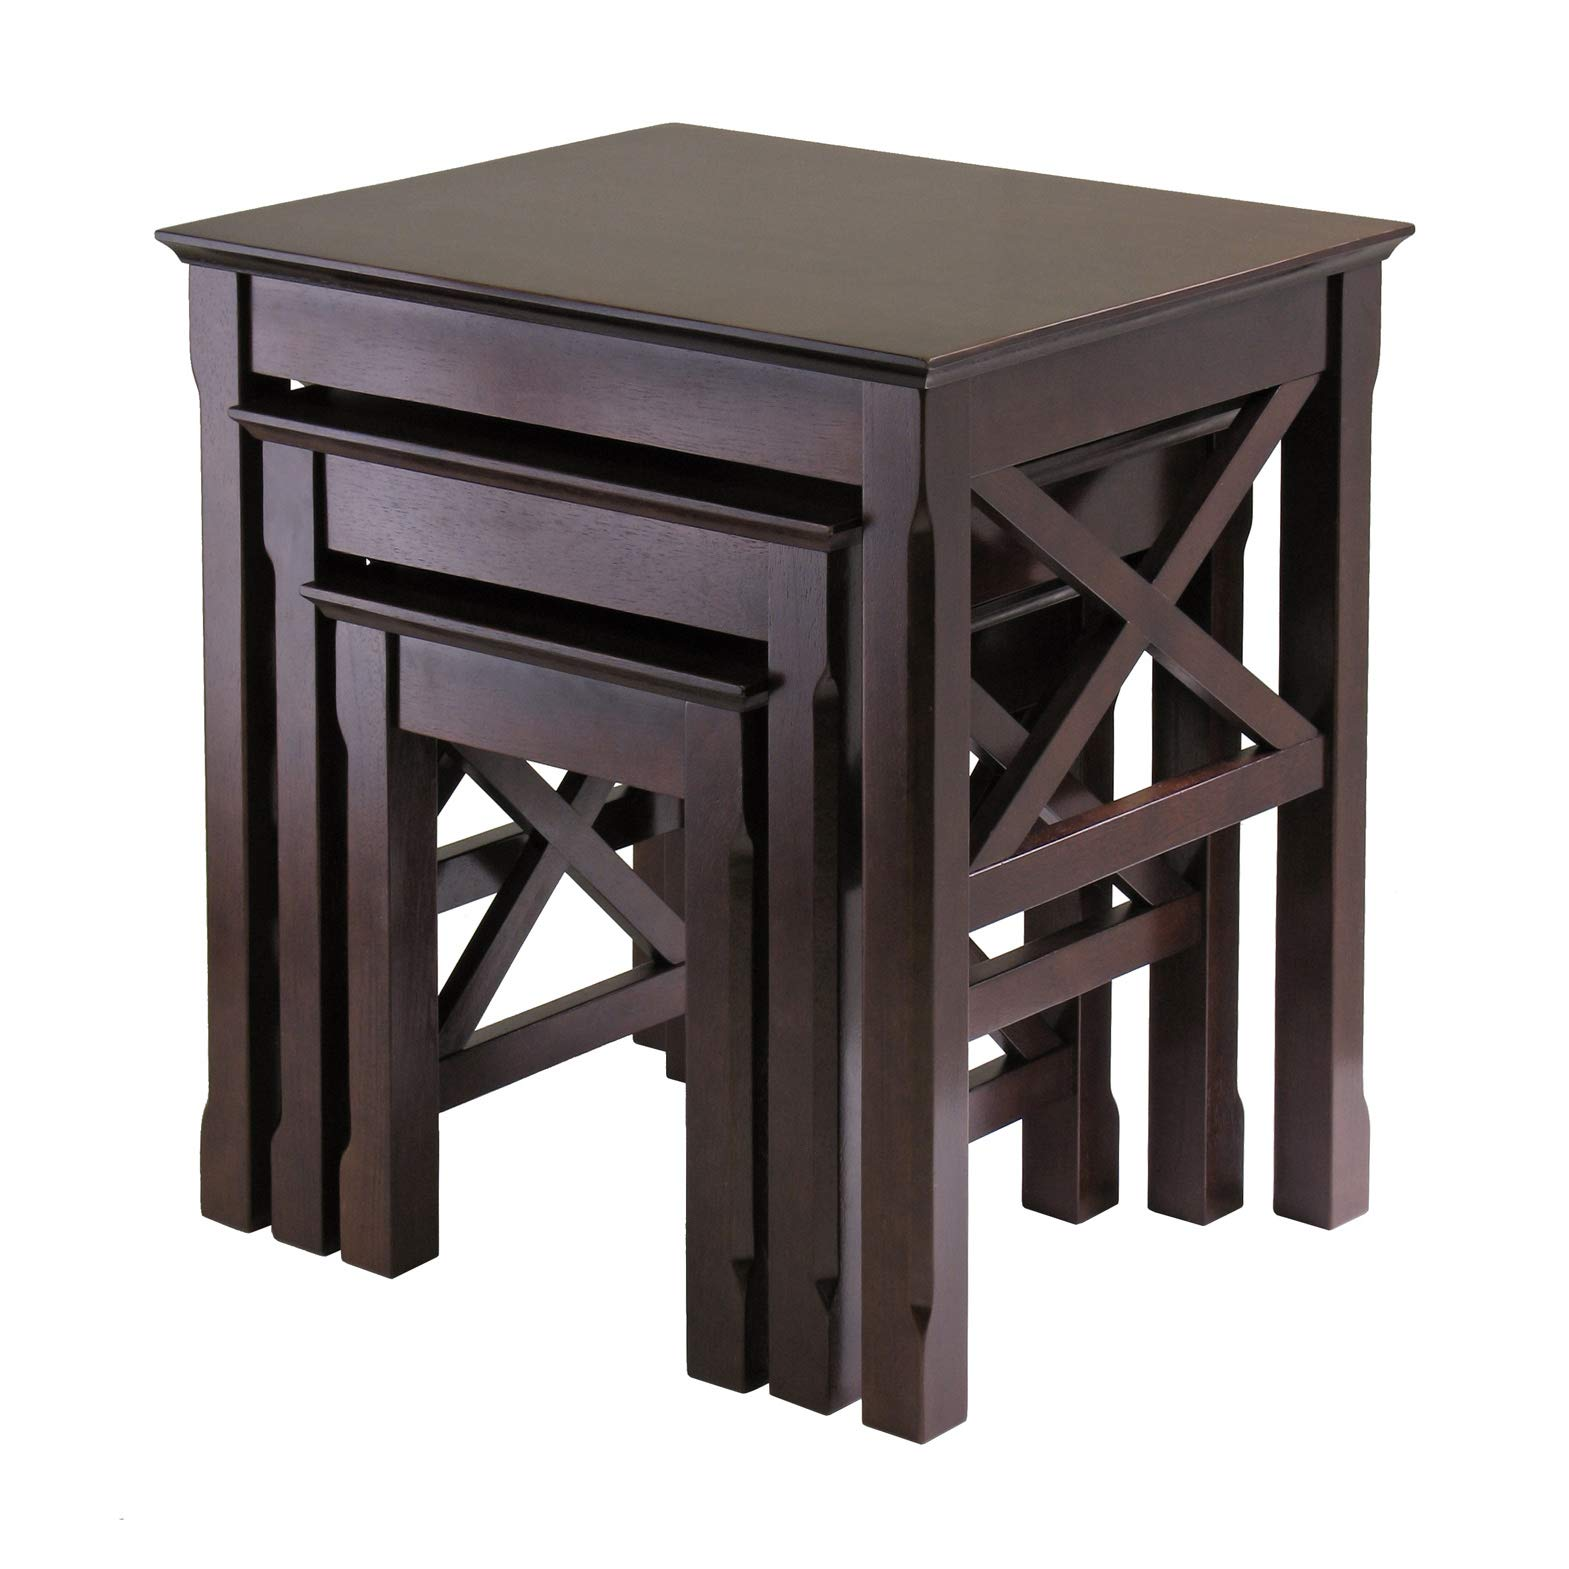 Winsome Wood 40333 Xola Nesting Tables, Cappuccino by Winsome Wood